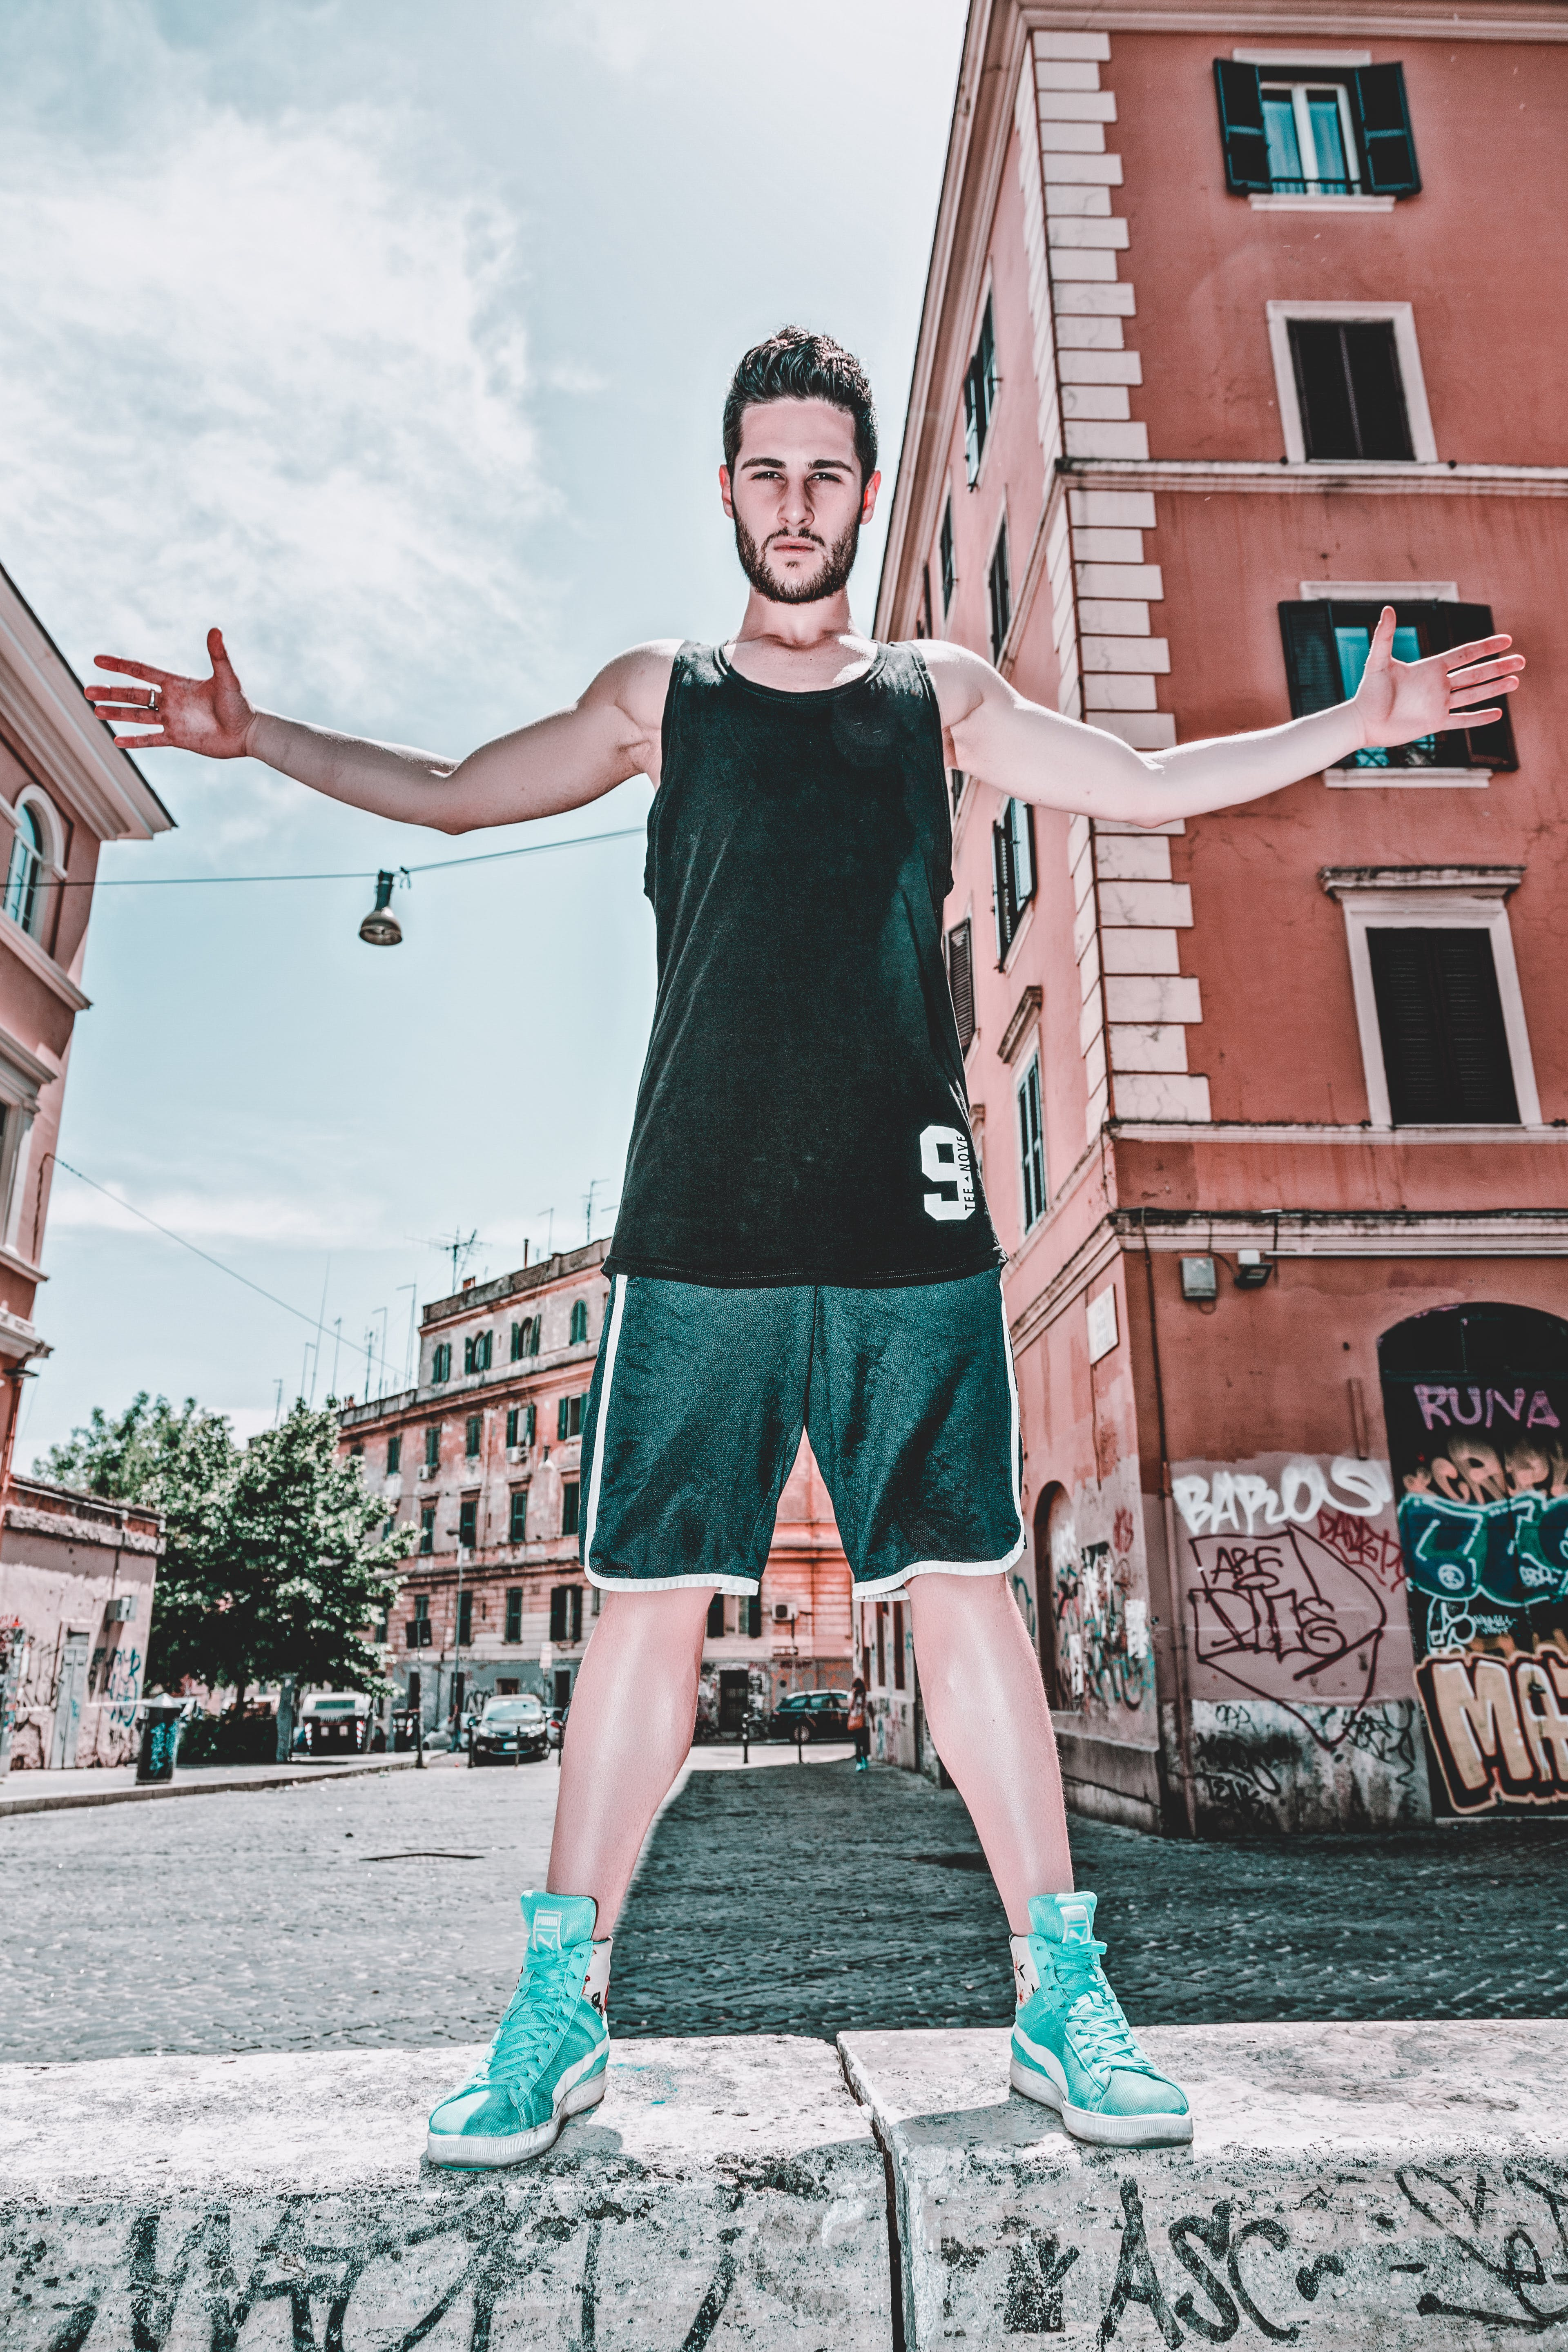 Man In Black Tank Top And Green Shorts Posing Near Building